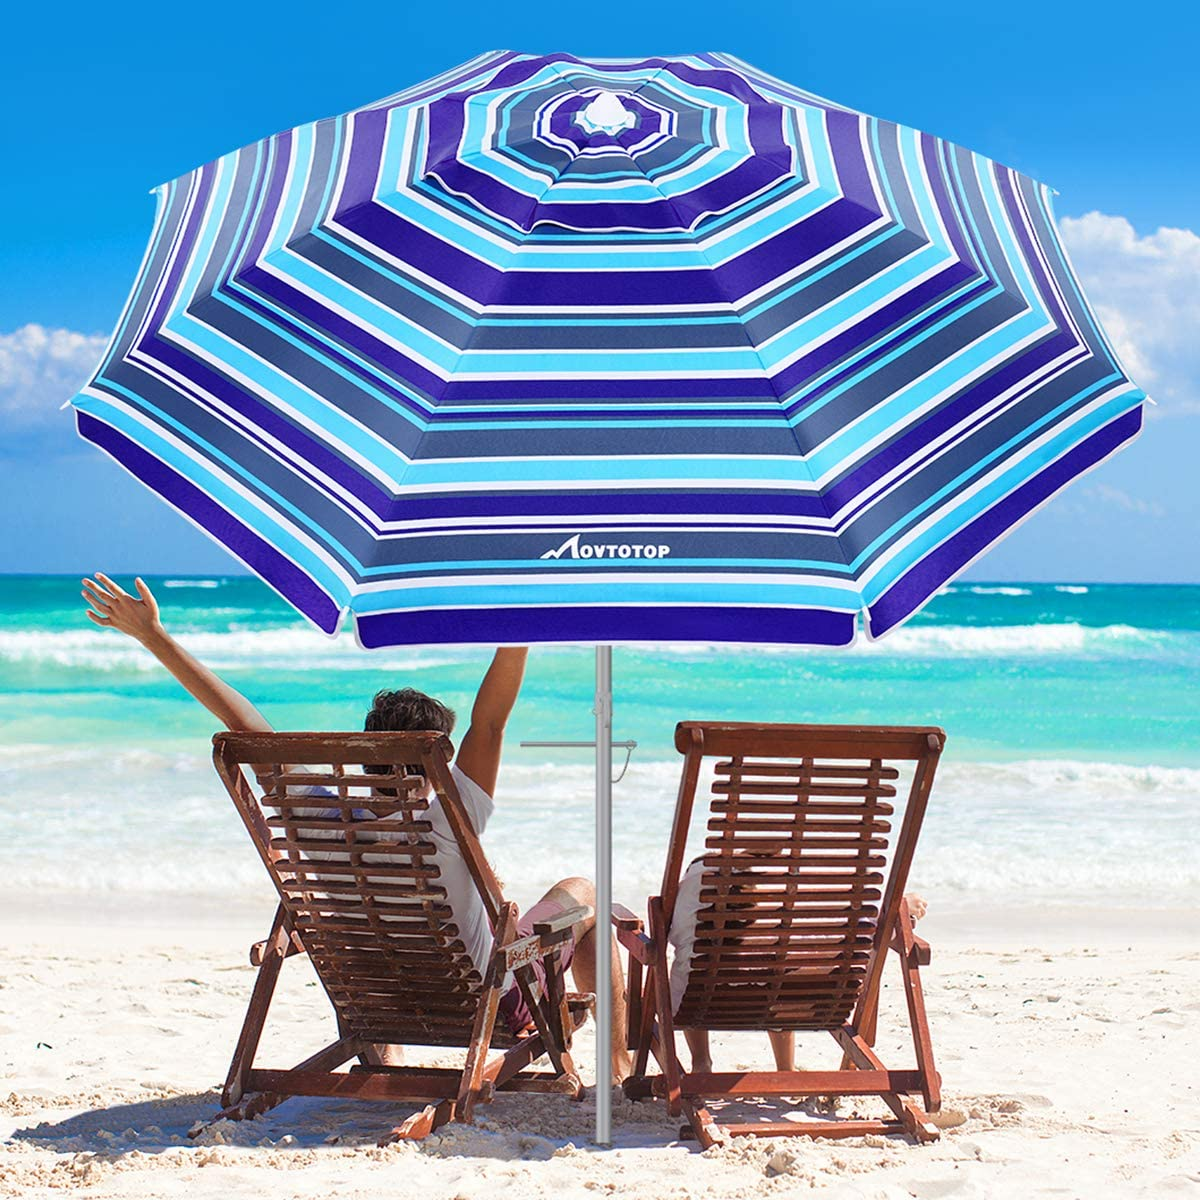 MOVTOTOP Beach Umbrella, 6.5ft Patio Umbrella with Sand Anchor Tilt Mechanism, Portable UV 50 Protection Outdoor Umbrella with Carry Bag for Garden Patio Beach Travel Royal Blue Stripe